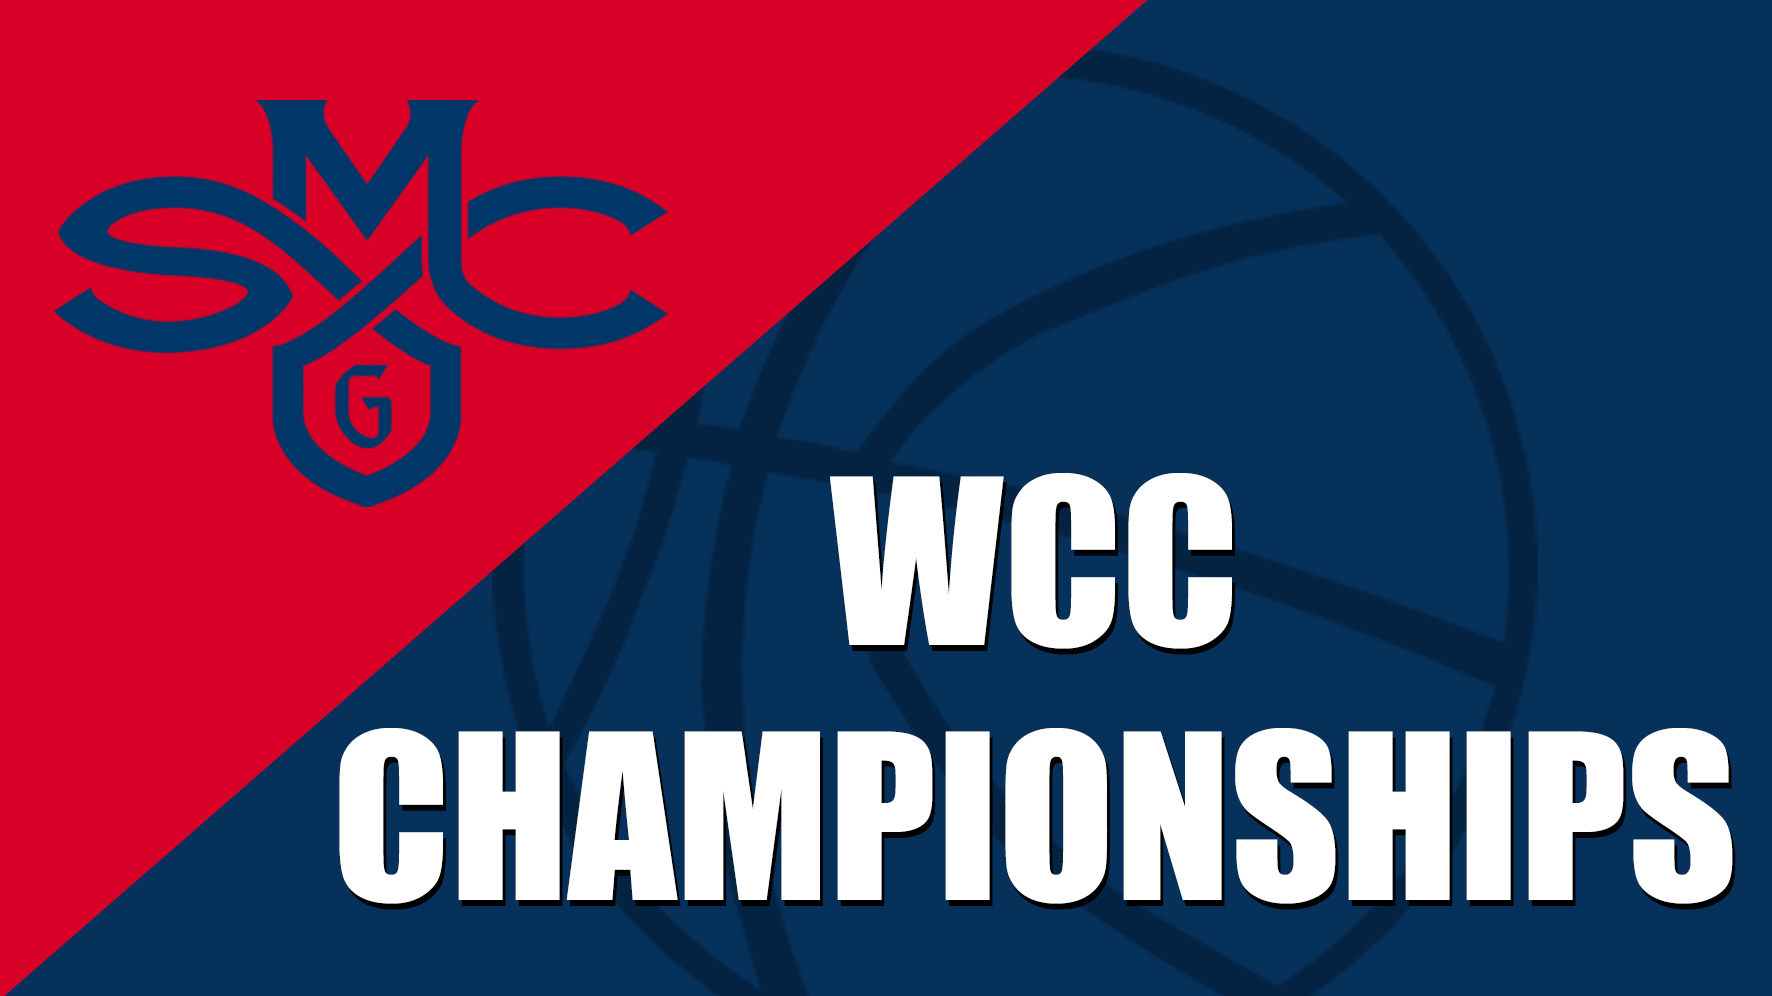 West Coast Conference Championships